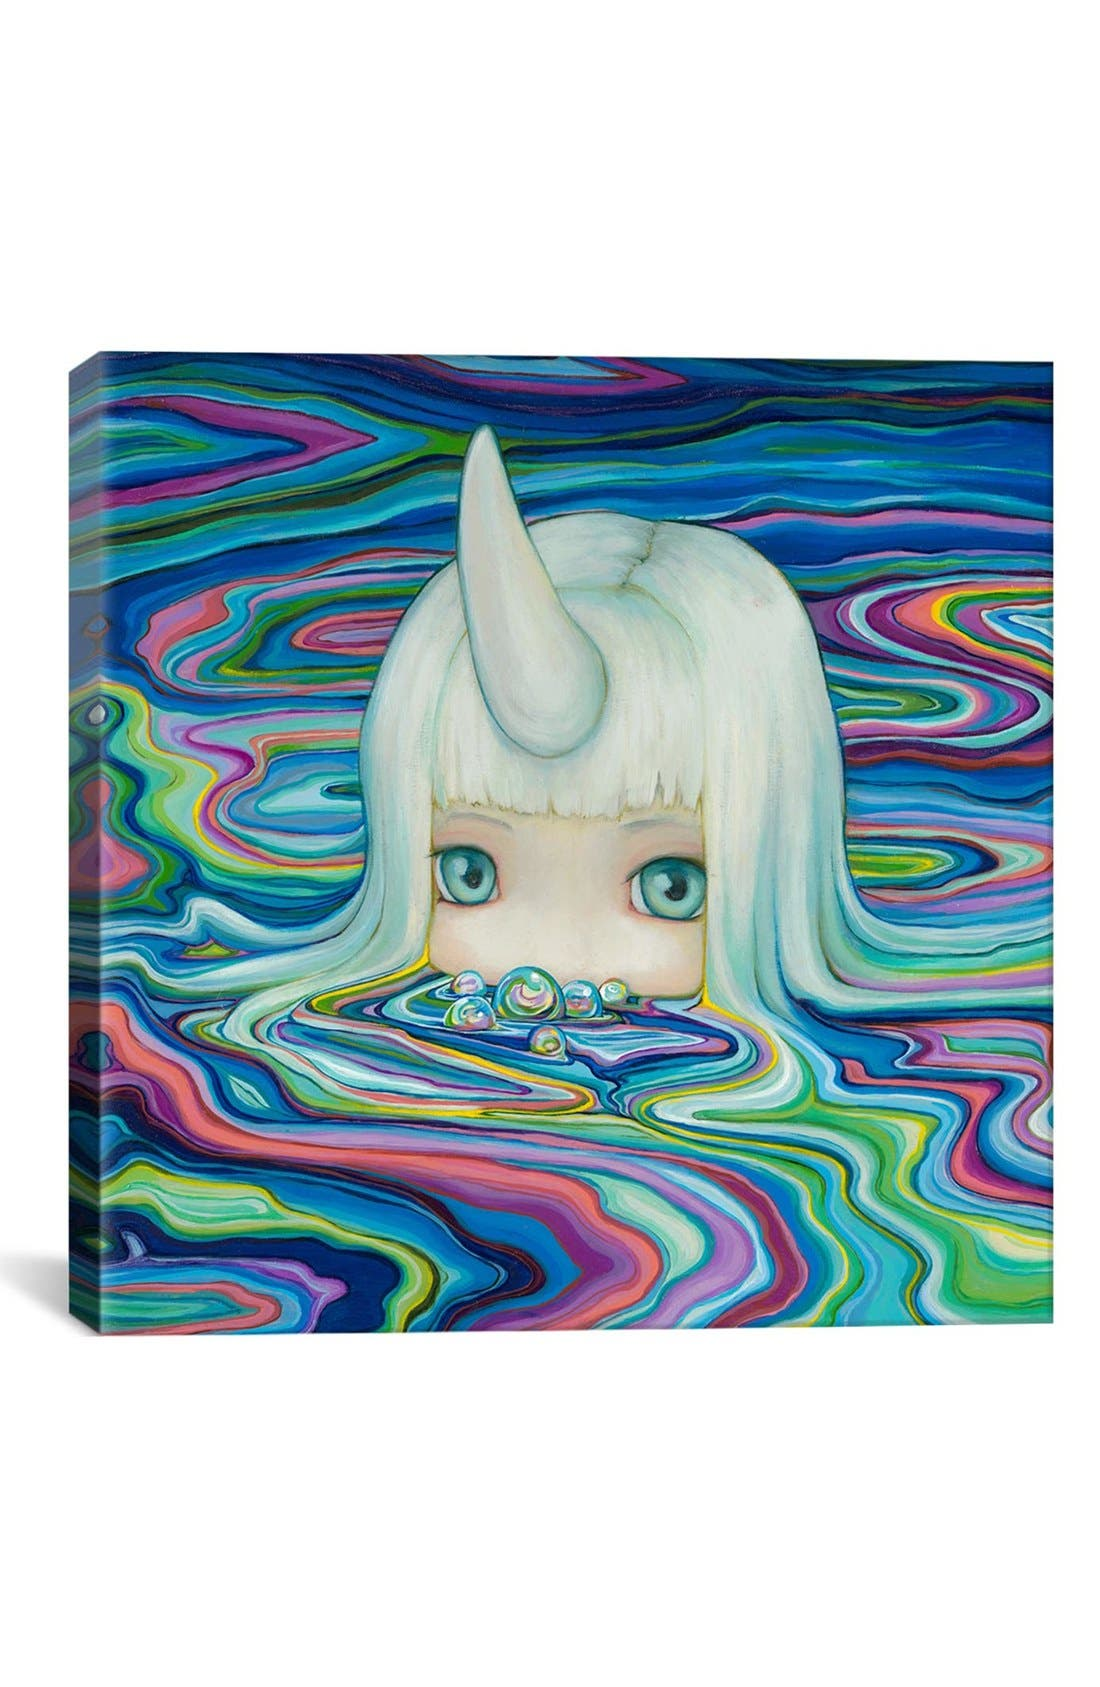 'Bubs - Camilla Derrico' Giclée Print Canvas Art,                             Main thumbnail 1, color,